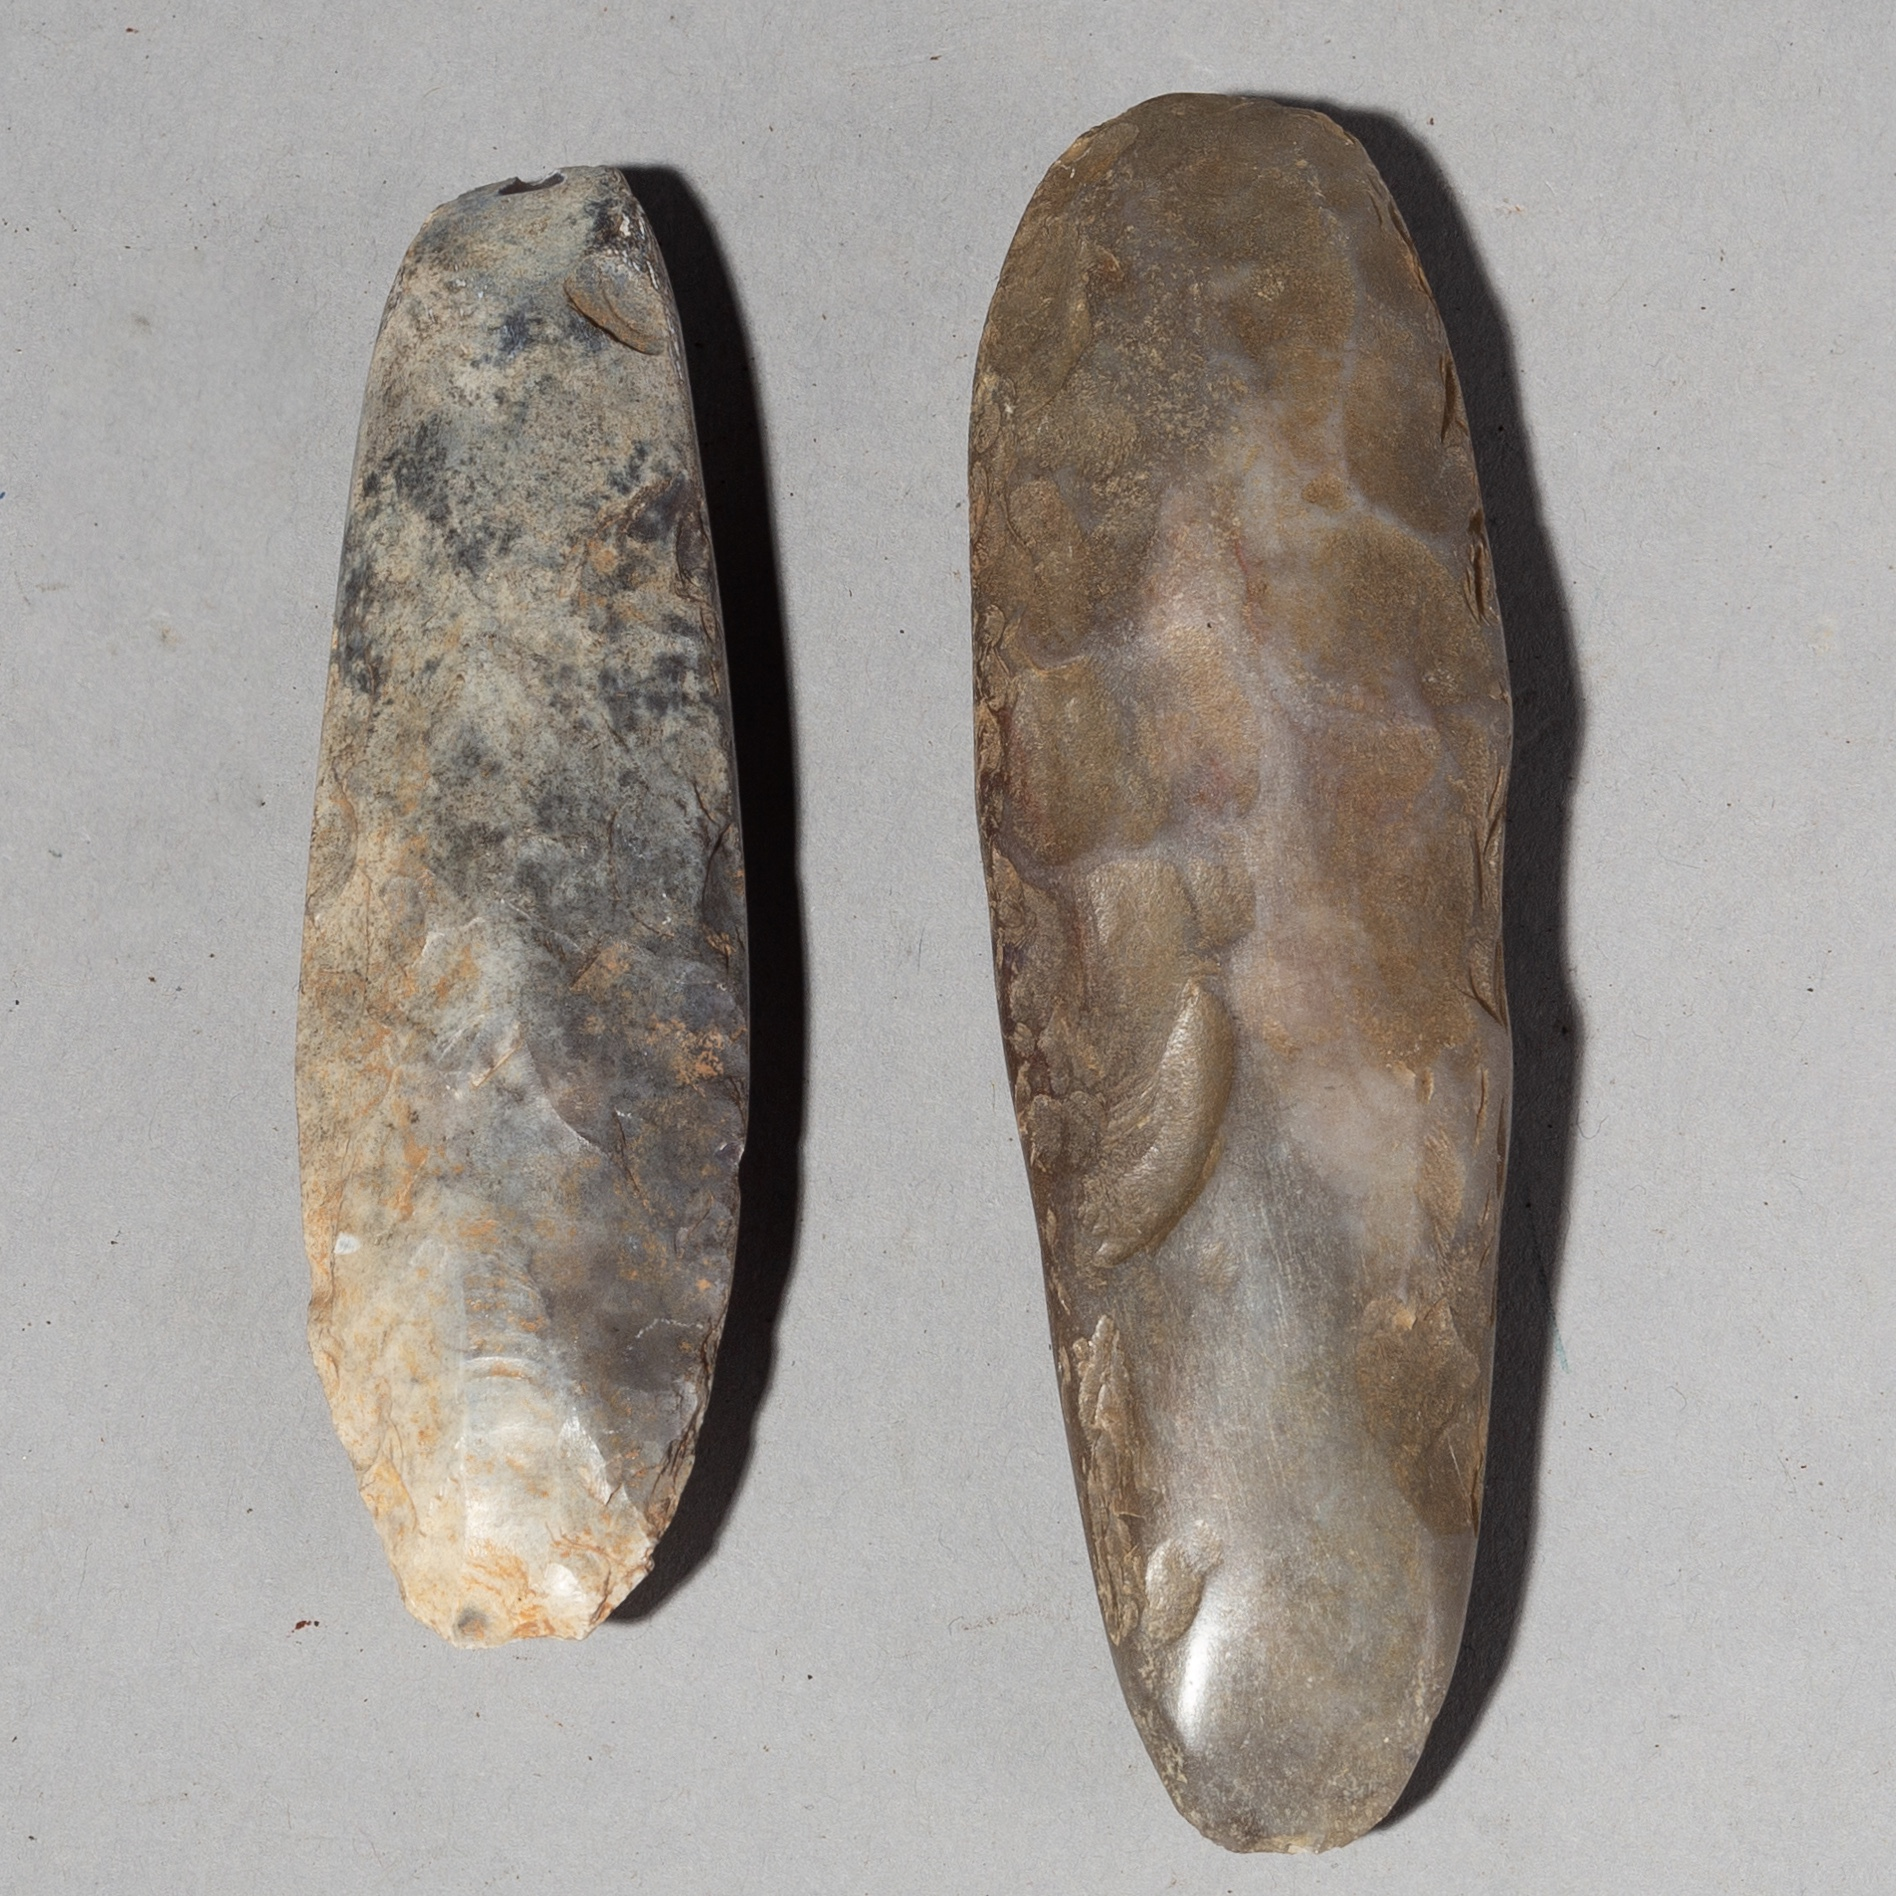 2 SMOOTHLY WORN  ANCIENT HAND TOOLS FROM THE AIR MOUINTAINS, NIGER ( No 2010 )